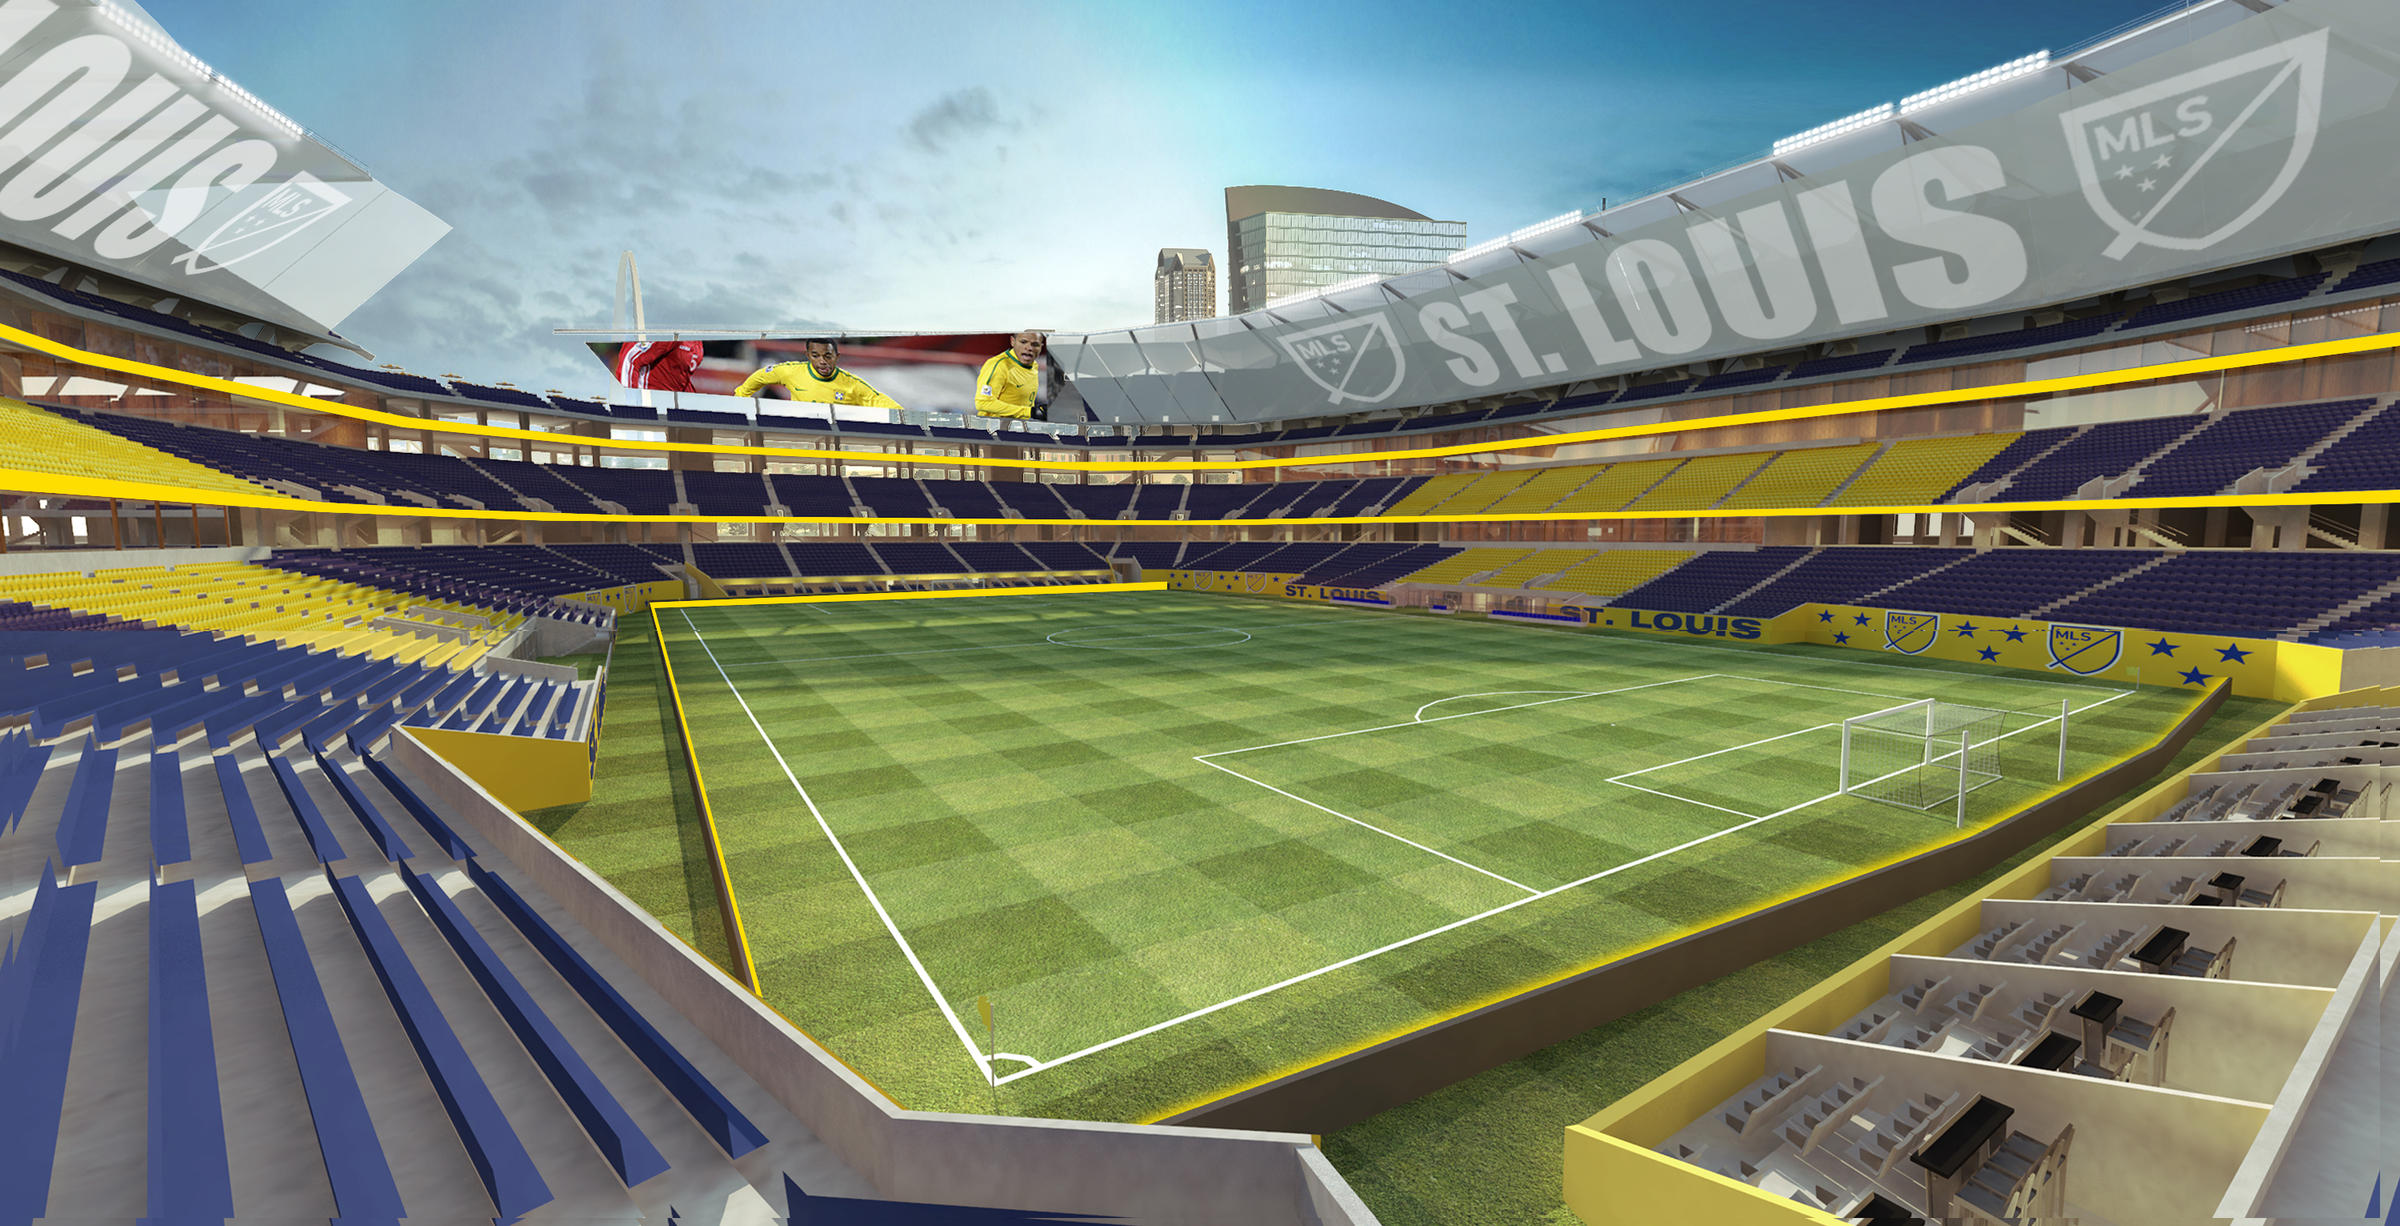 St Louis Obtains Option For Potential Mls Stadium Site